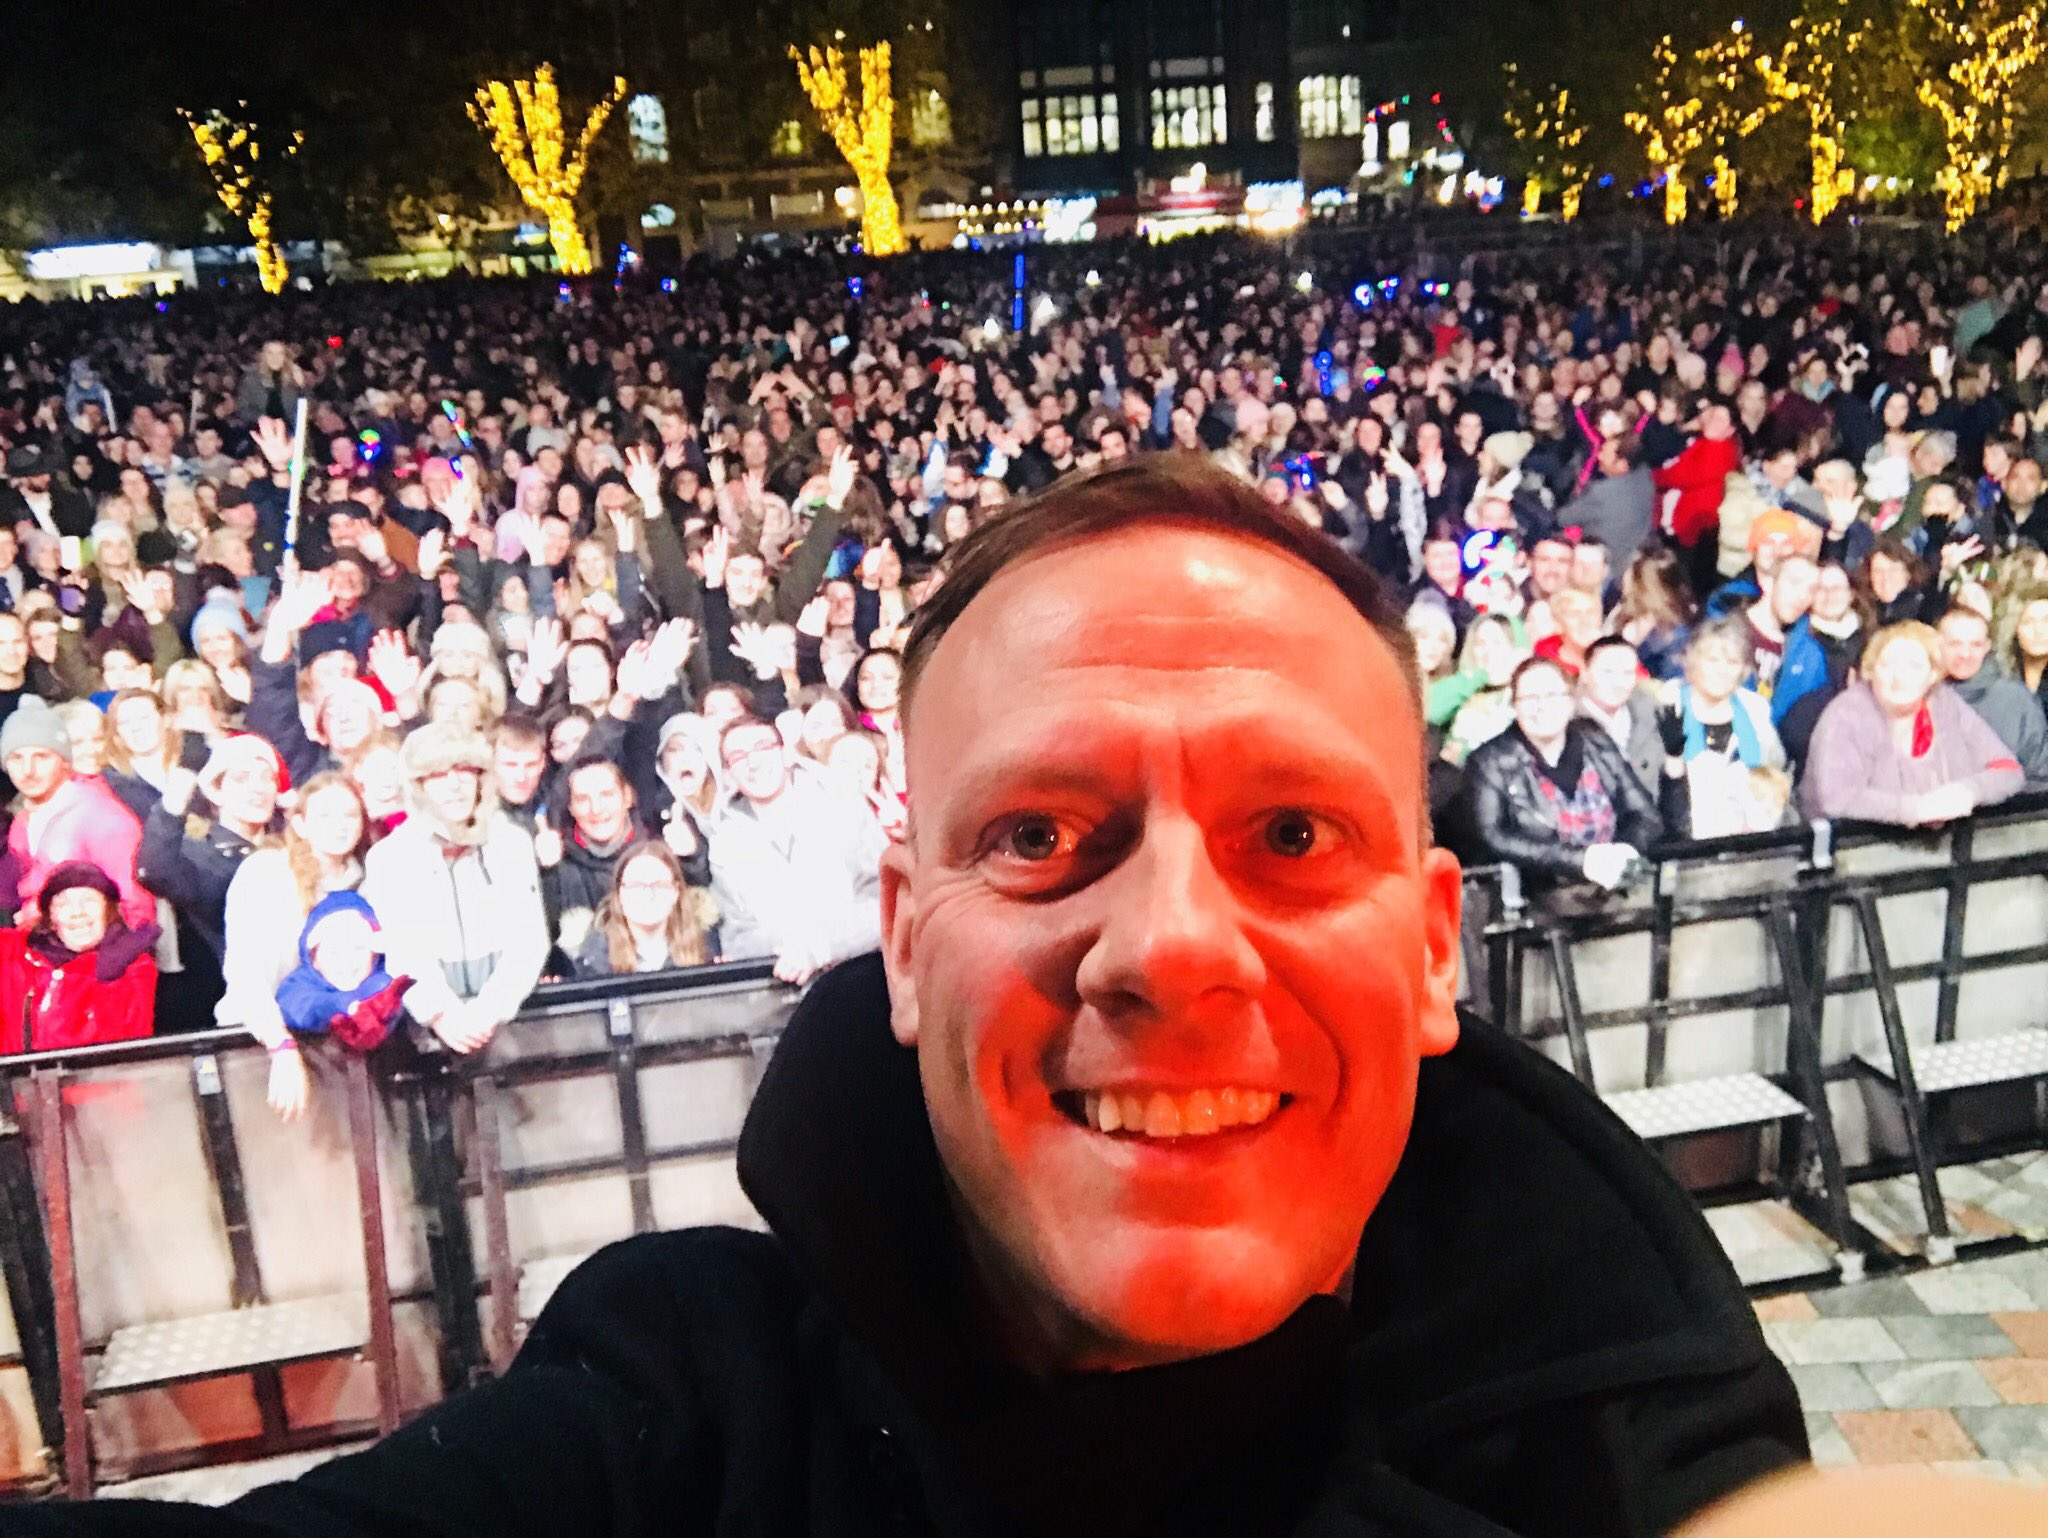 Thank you Salisbury. It was an honour to switch on your Christmas lights! https://t.co/sEhfZgN3zE